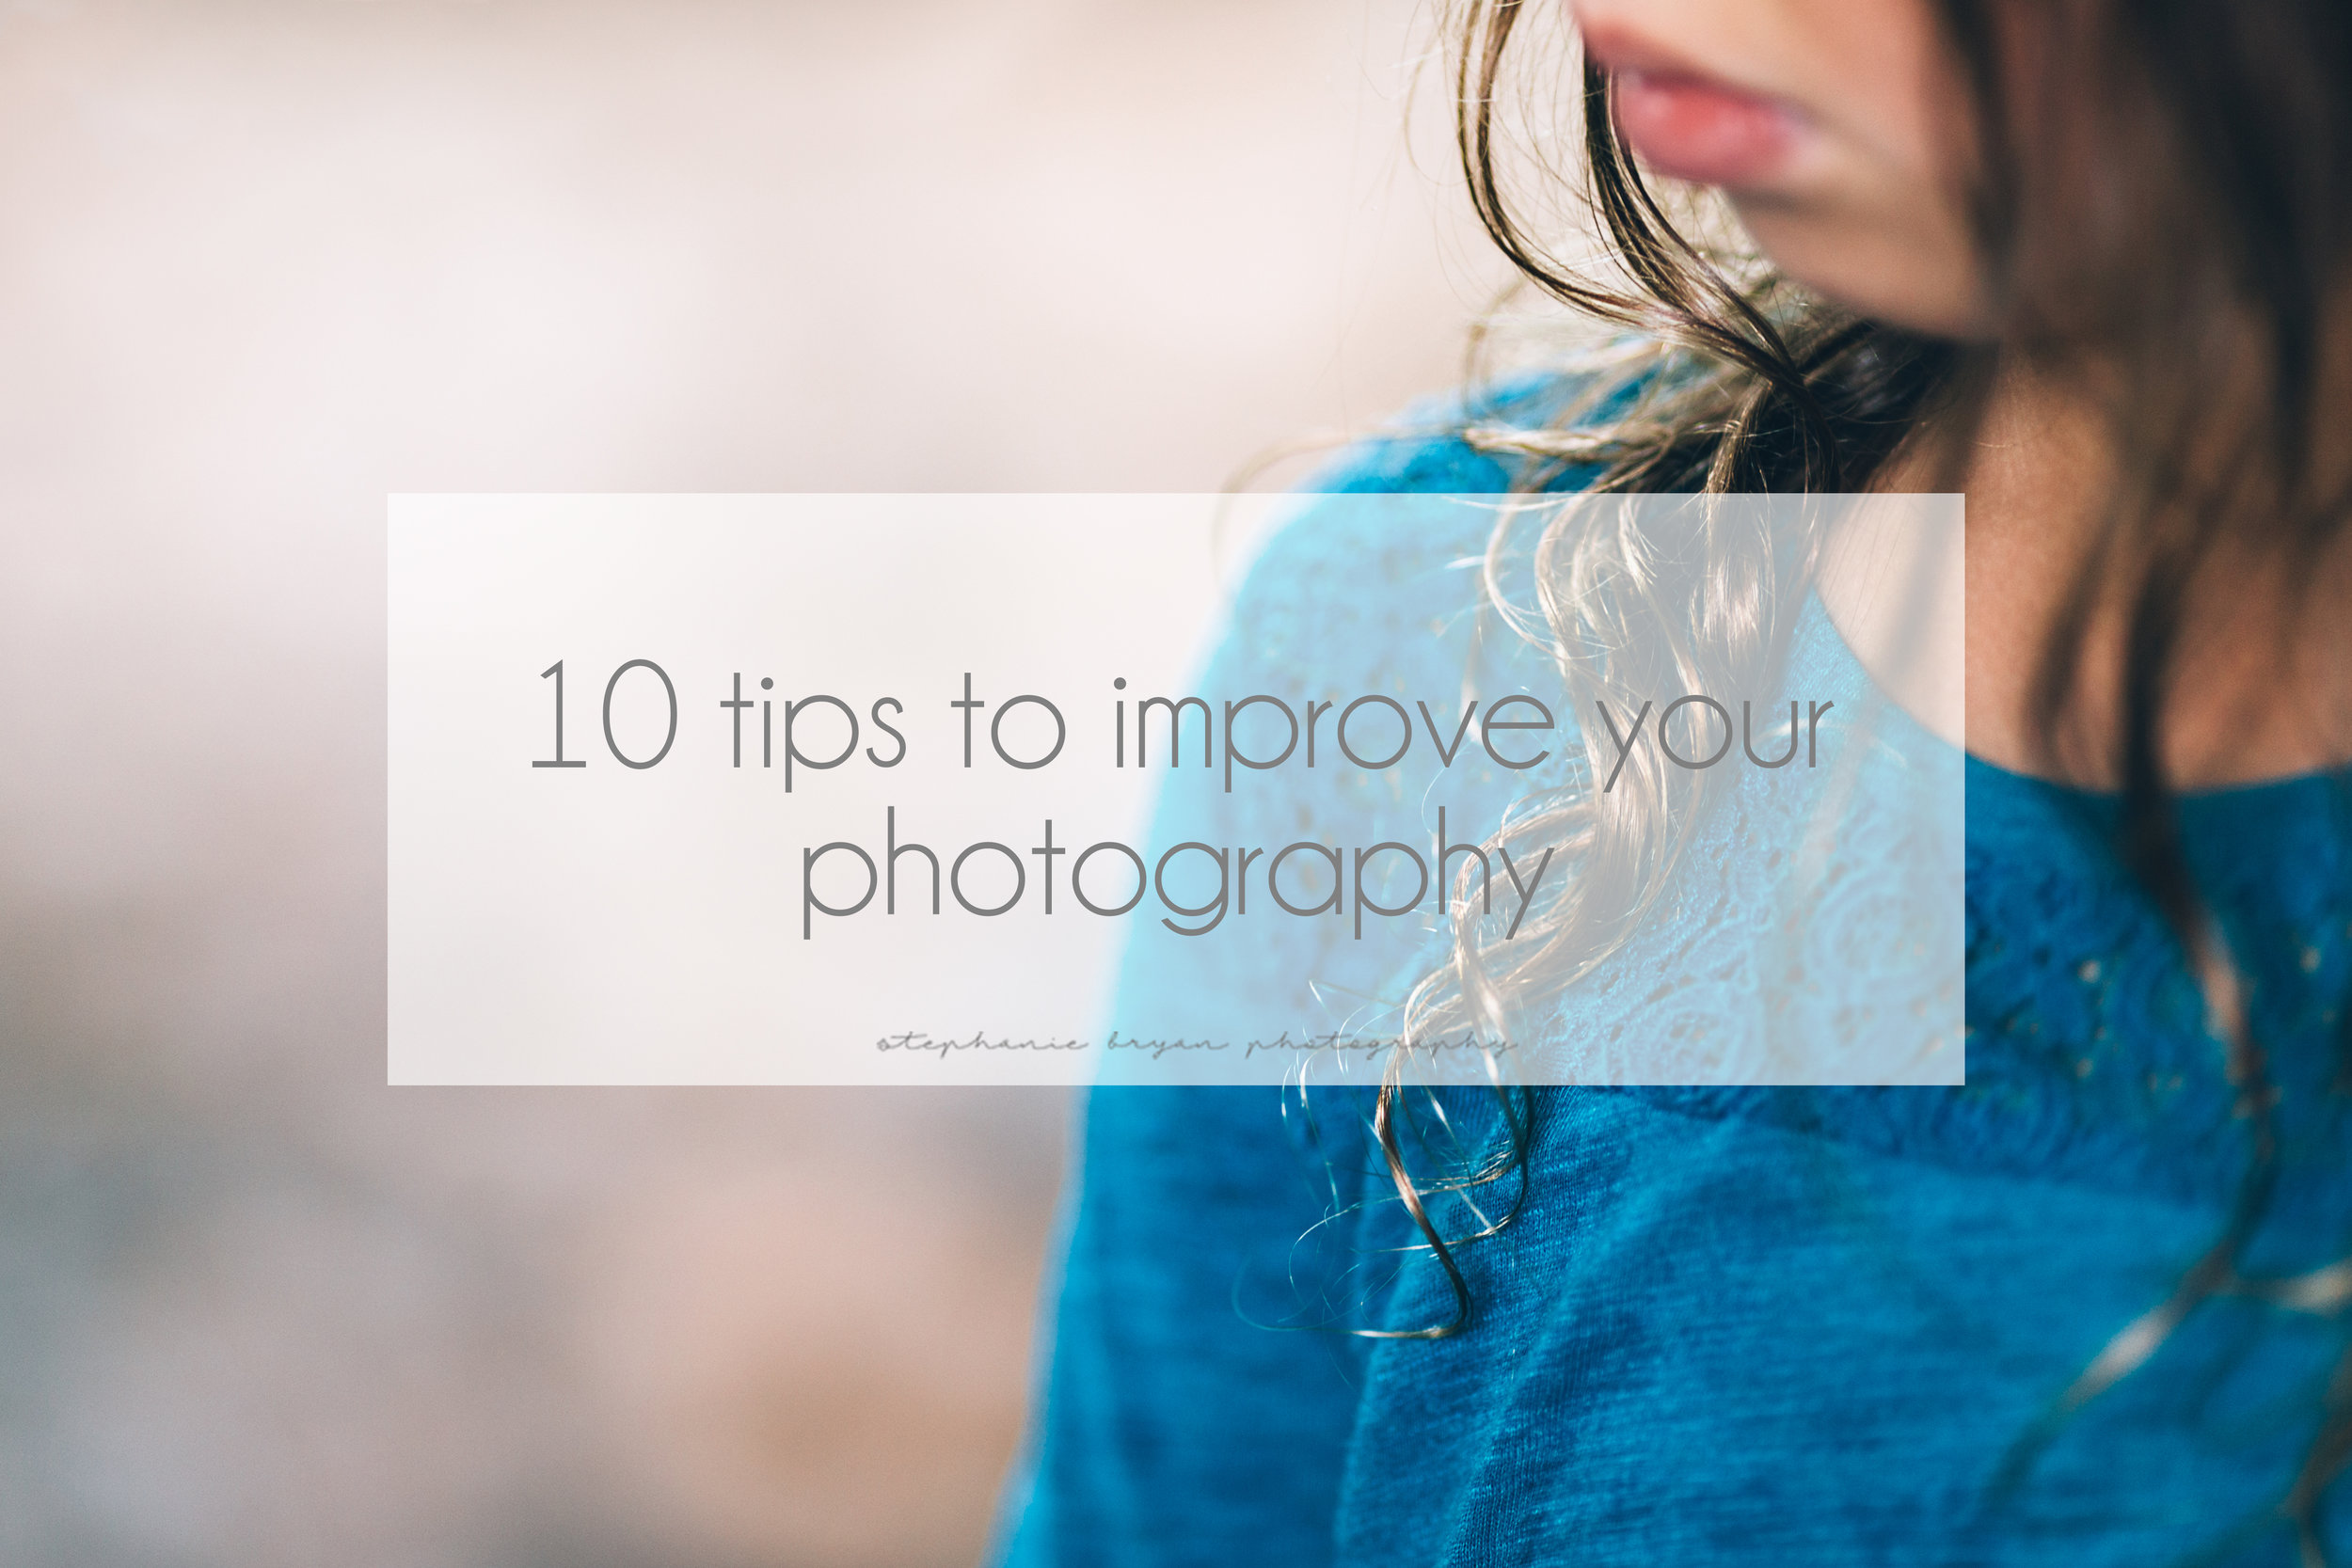 Stephanie Bryan Photography - 10 tips to improve your photography